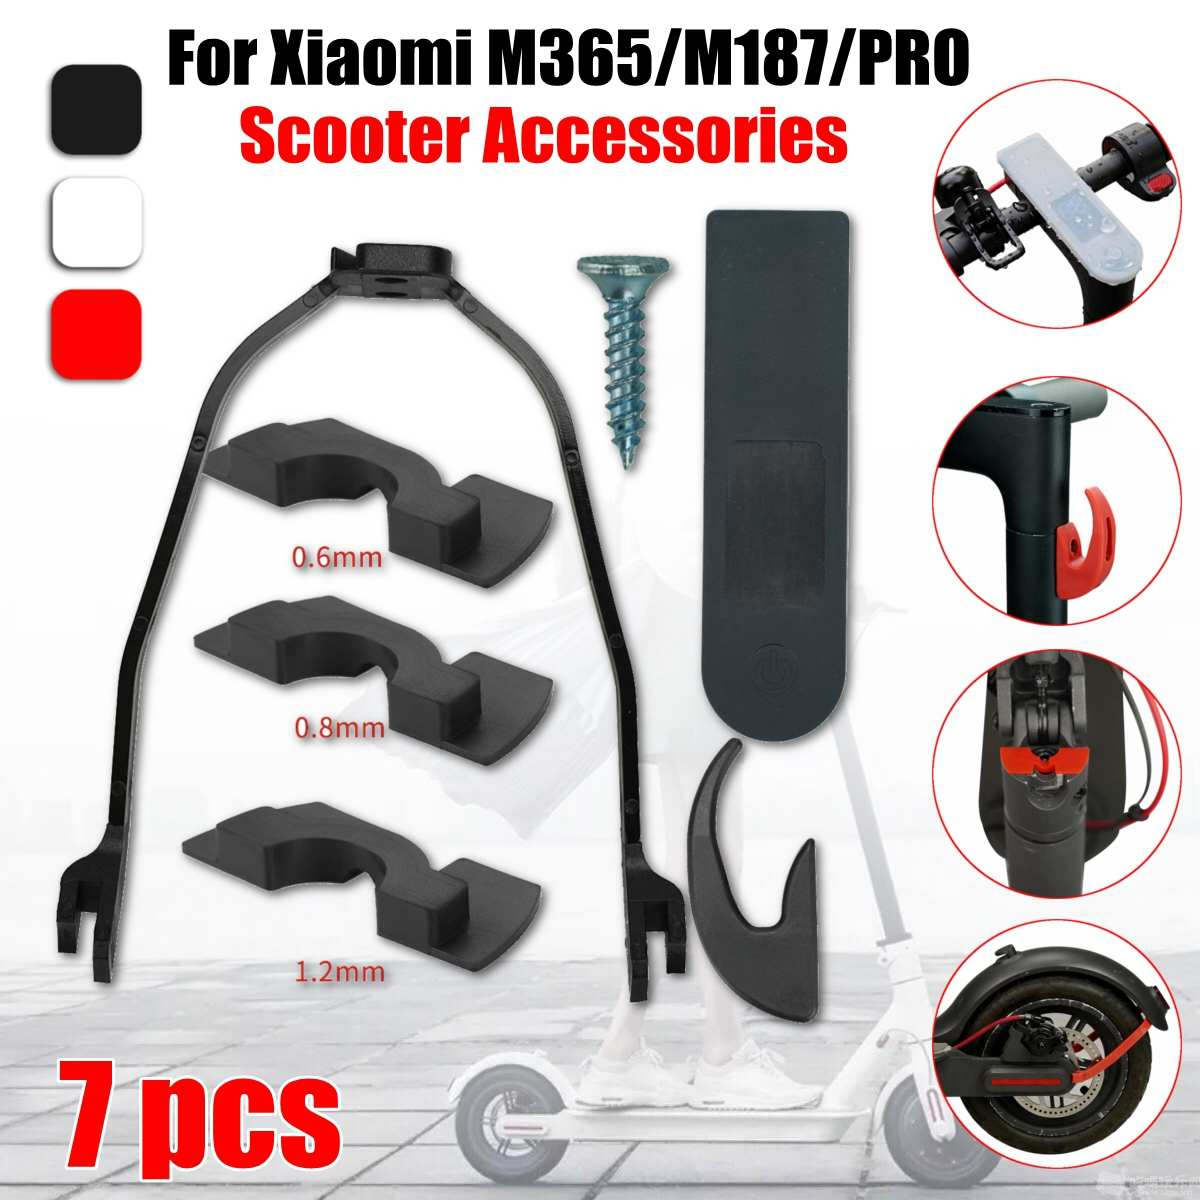 For Xiaomi M365 M187 Pro Scooter Dashboard Cover Fender Bracket With 3 Damping Wrench Accessories Kit